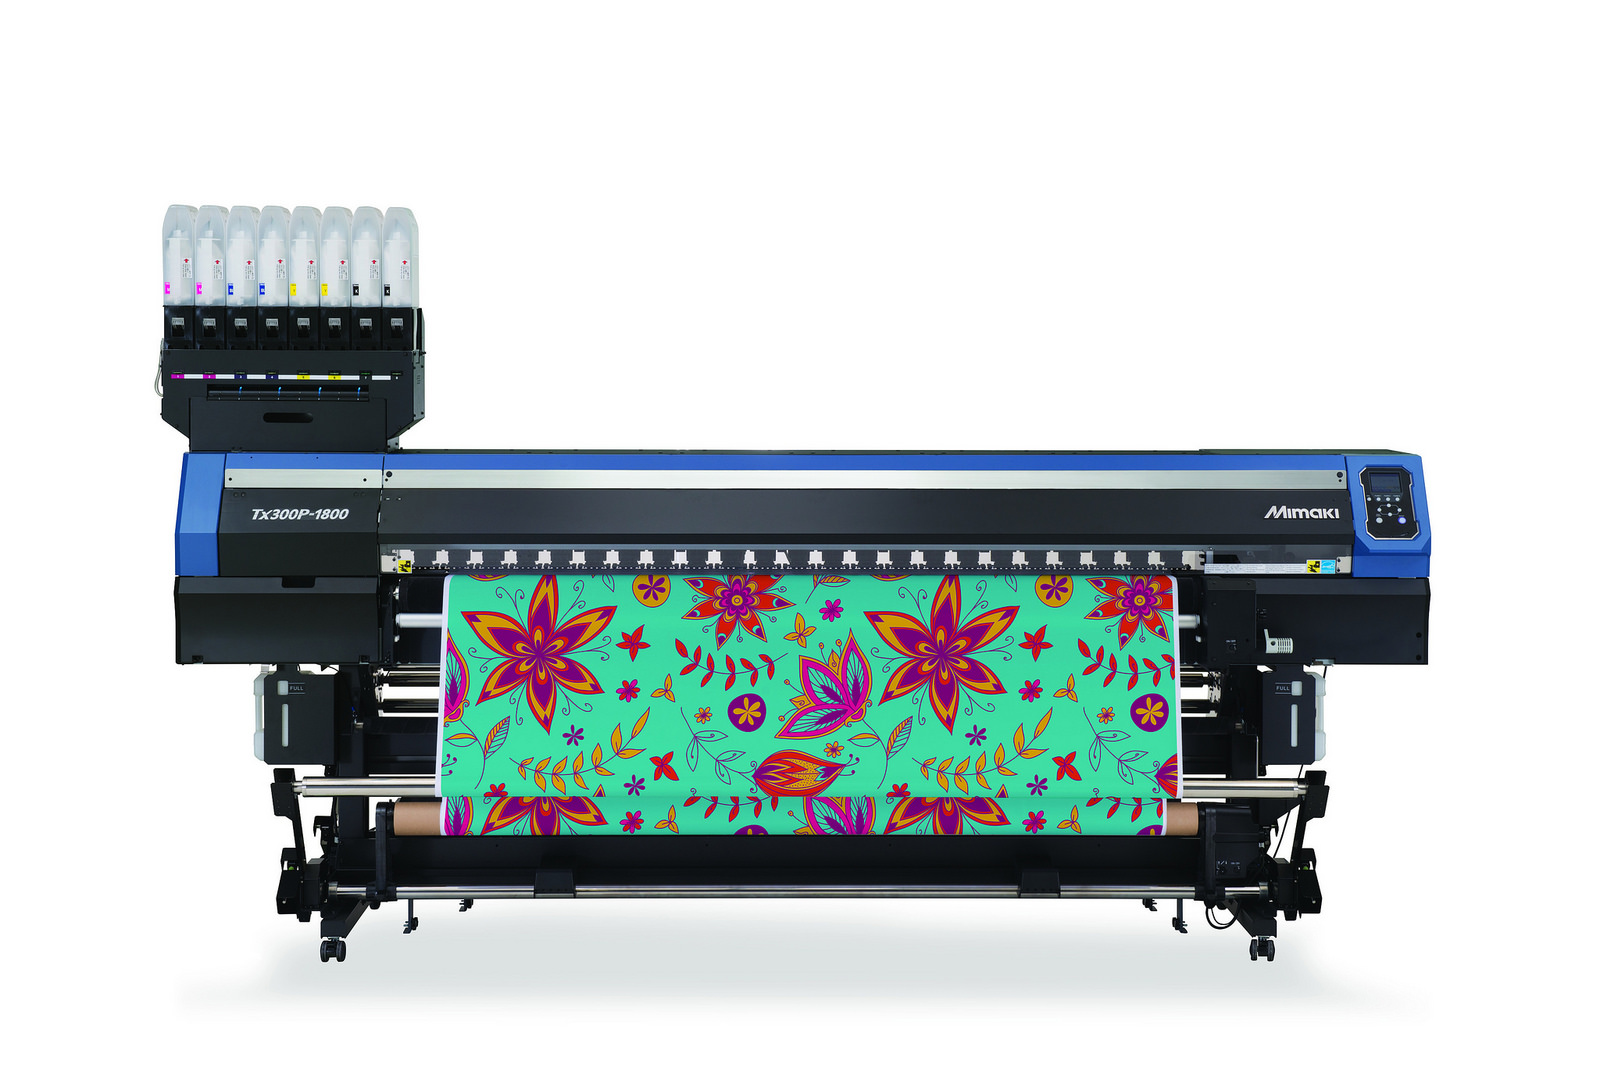 Mimaki's new Tx300P-1800 wide format textile printer